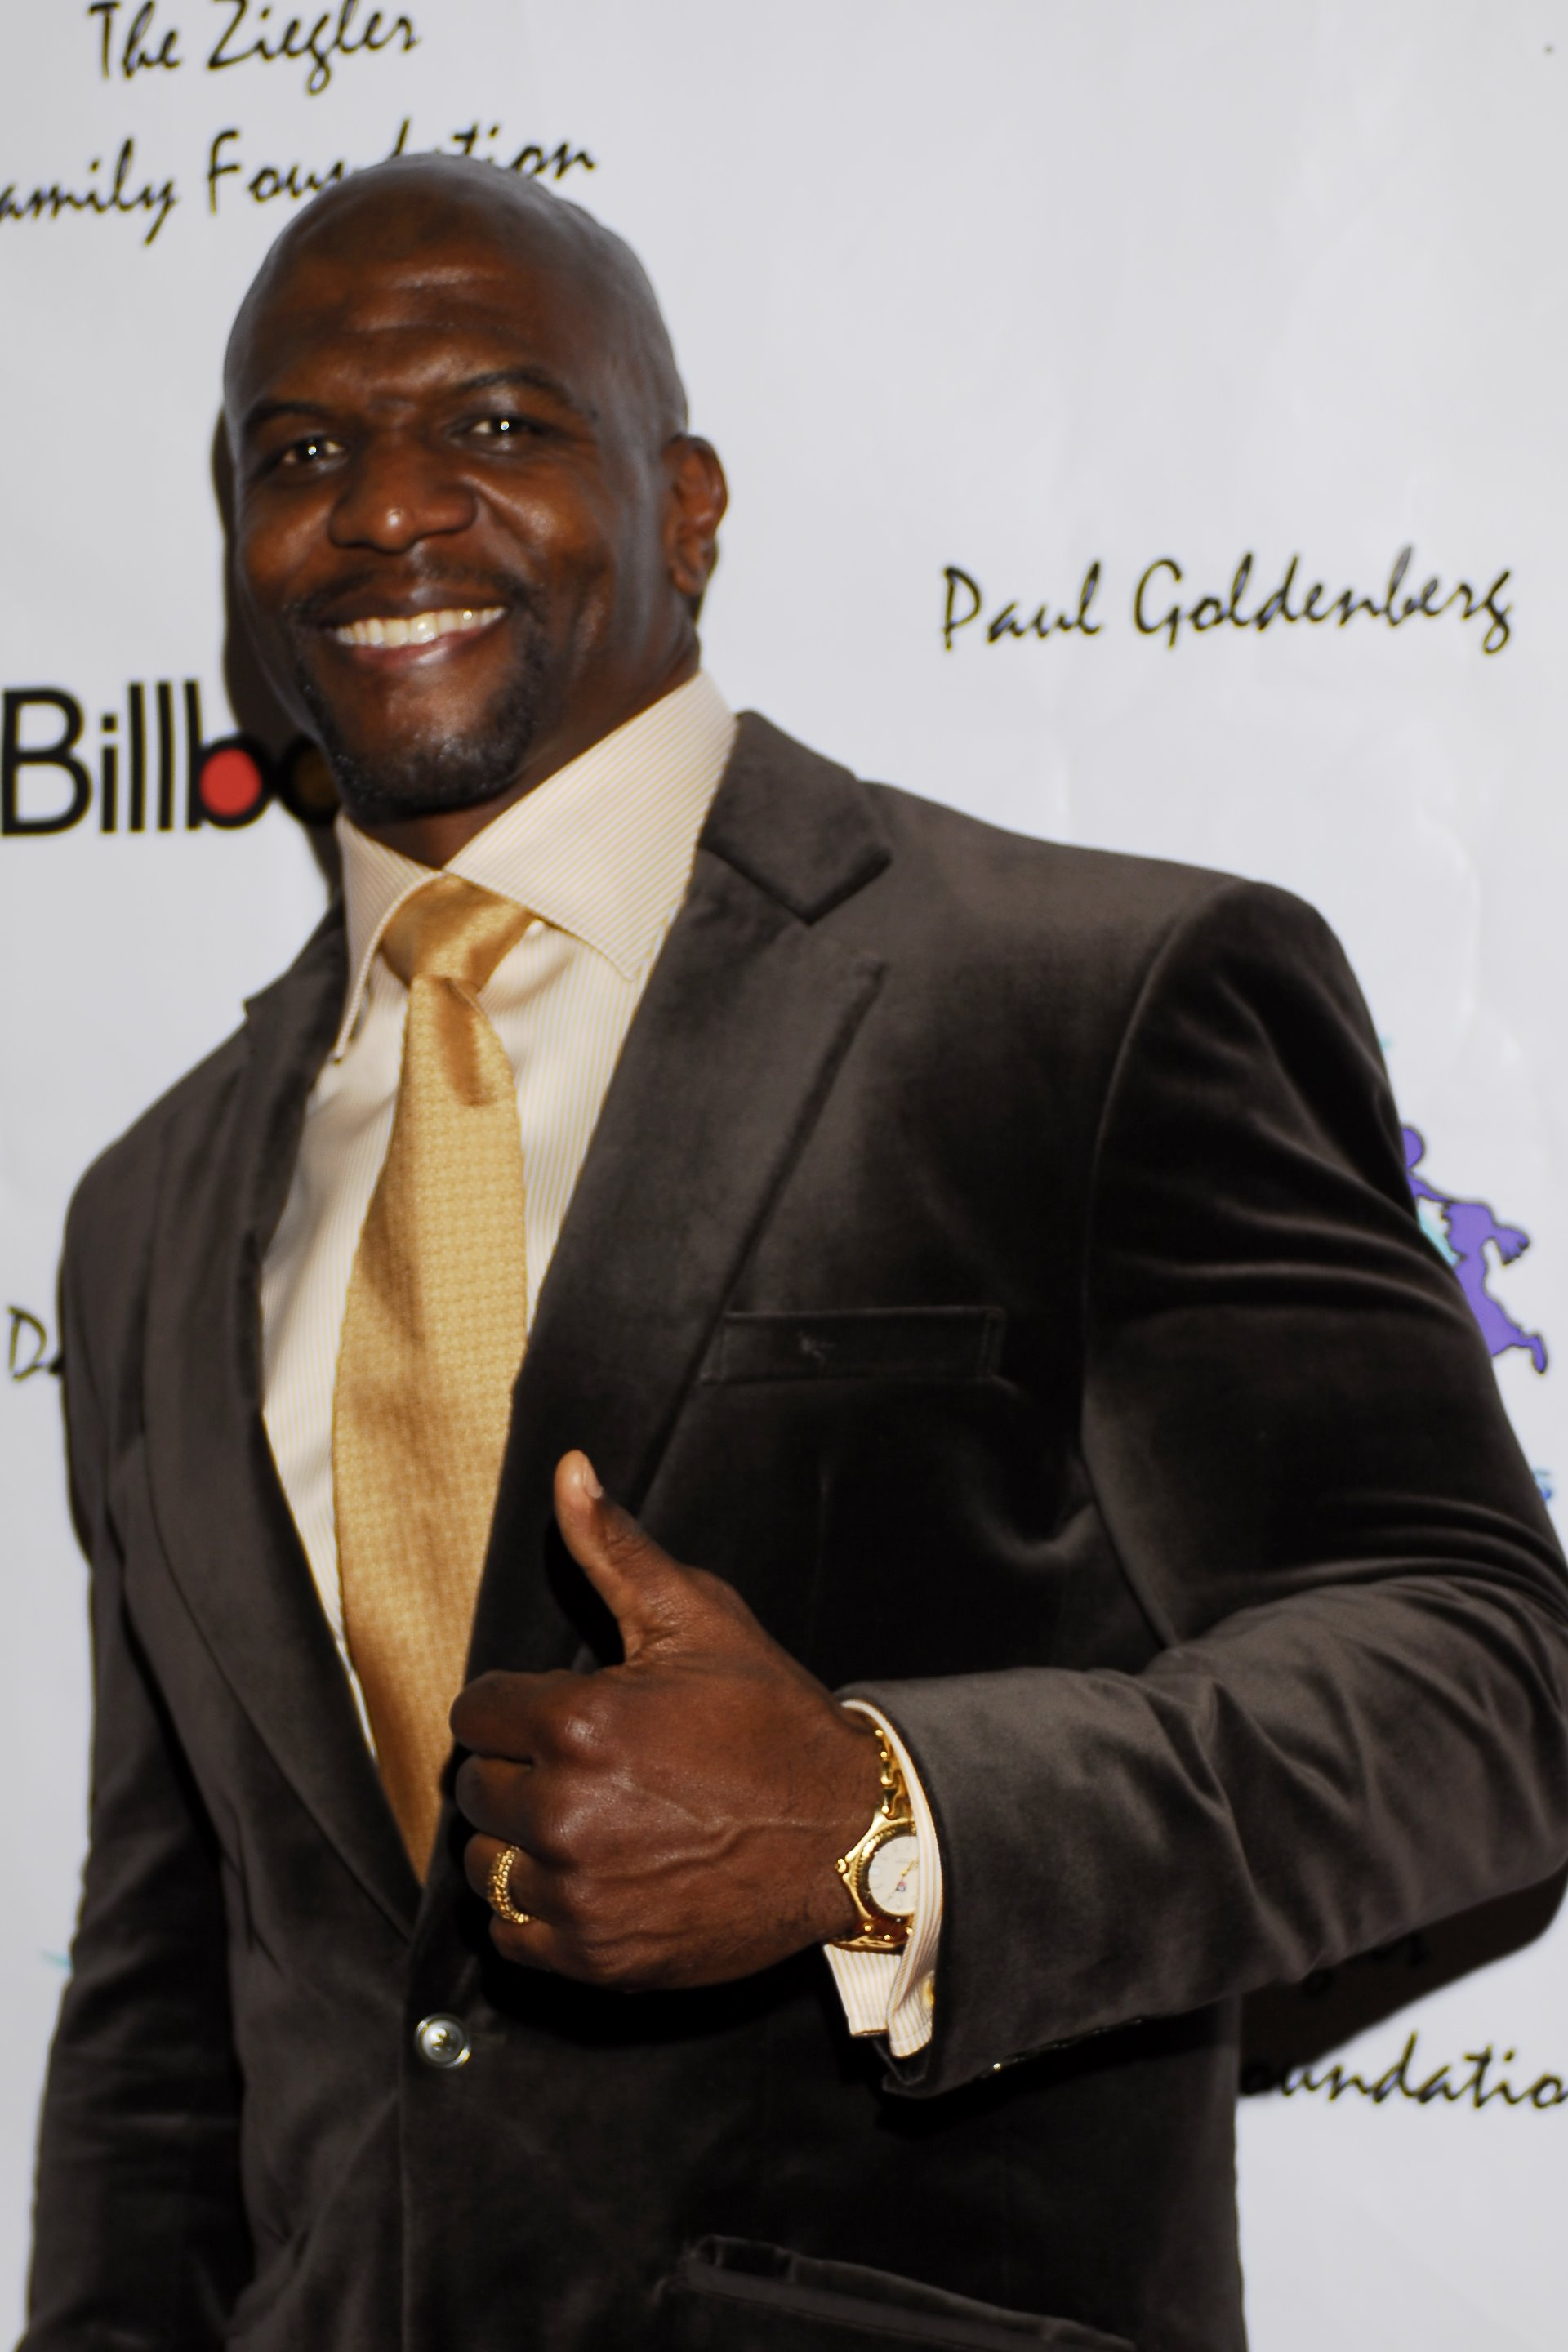 terry crews nflterry crews art, terry crews nfl, terry crews wife, terry crews painting, terry crews workout, terry crews artwork, terry crews white chicks, terry crews movies, terry crews family, terry crews kids, terry crews idiocracy, terry crews gif, terry crews muscle music, terry crews dancing, terry crews death, terry crews blended, terry crews commercial, terry crews drums, terry crews net worth